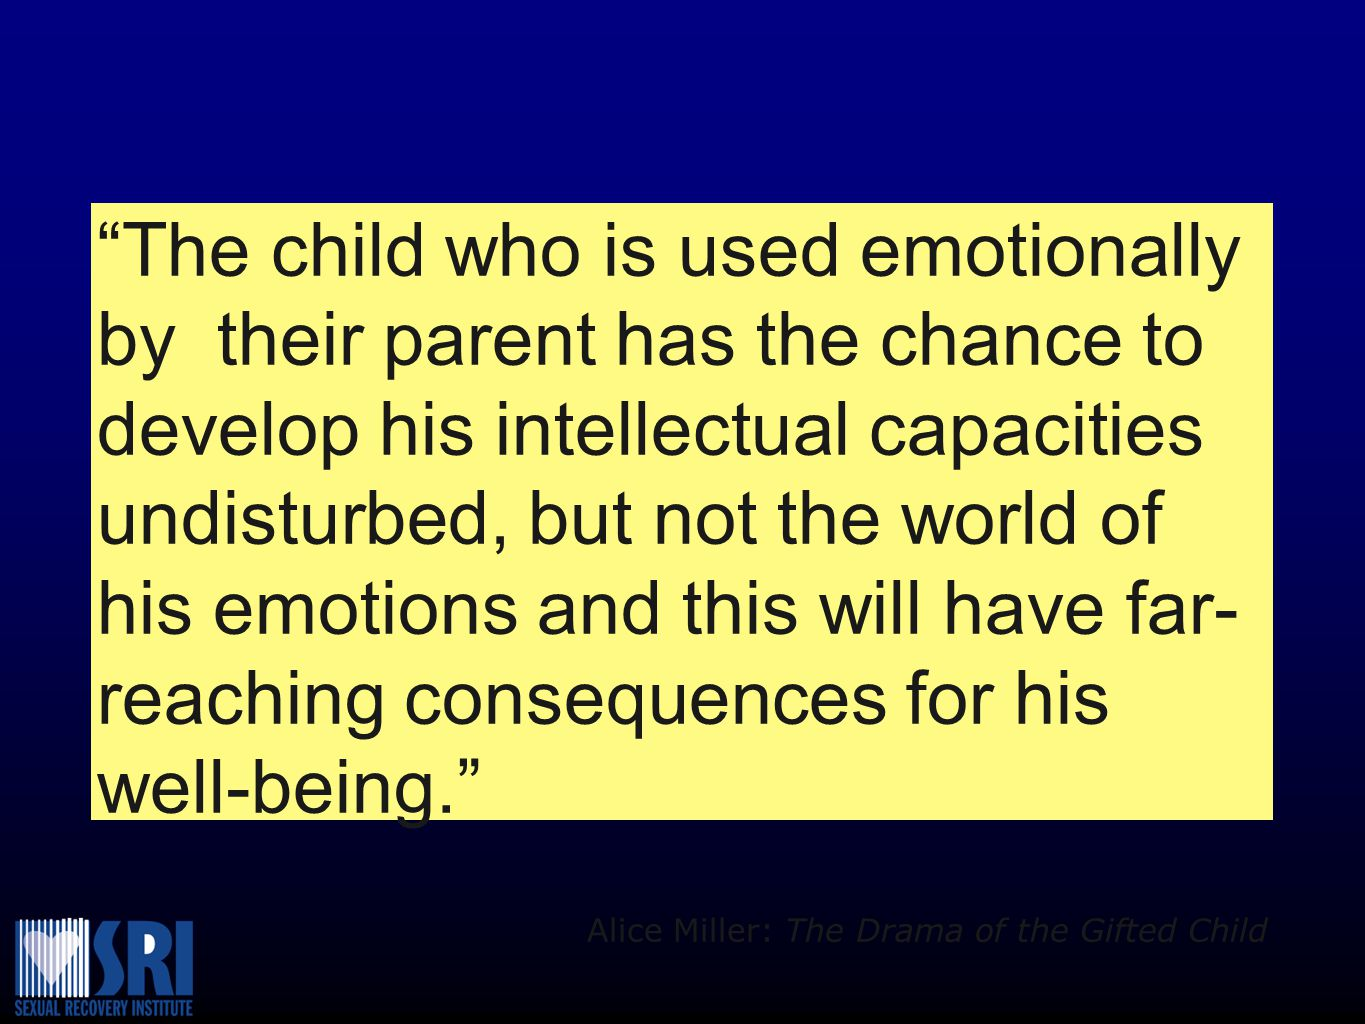 The child who is used emotionally by their parent has the chance to develop his intellectual capacities undisturbed, but not the world of his emotions and this will have far- reaching consequences for his well-being. Alice Miller: The Drama of the Gifted Child